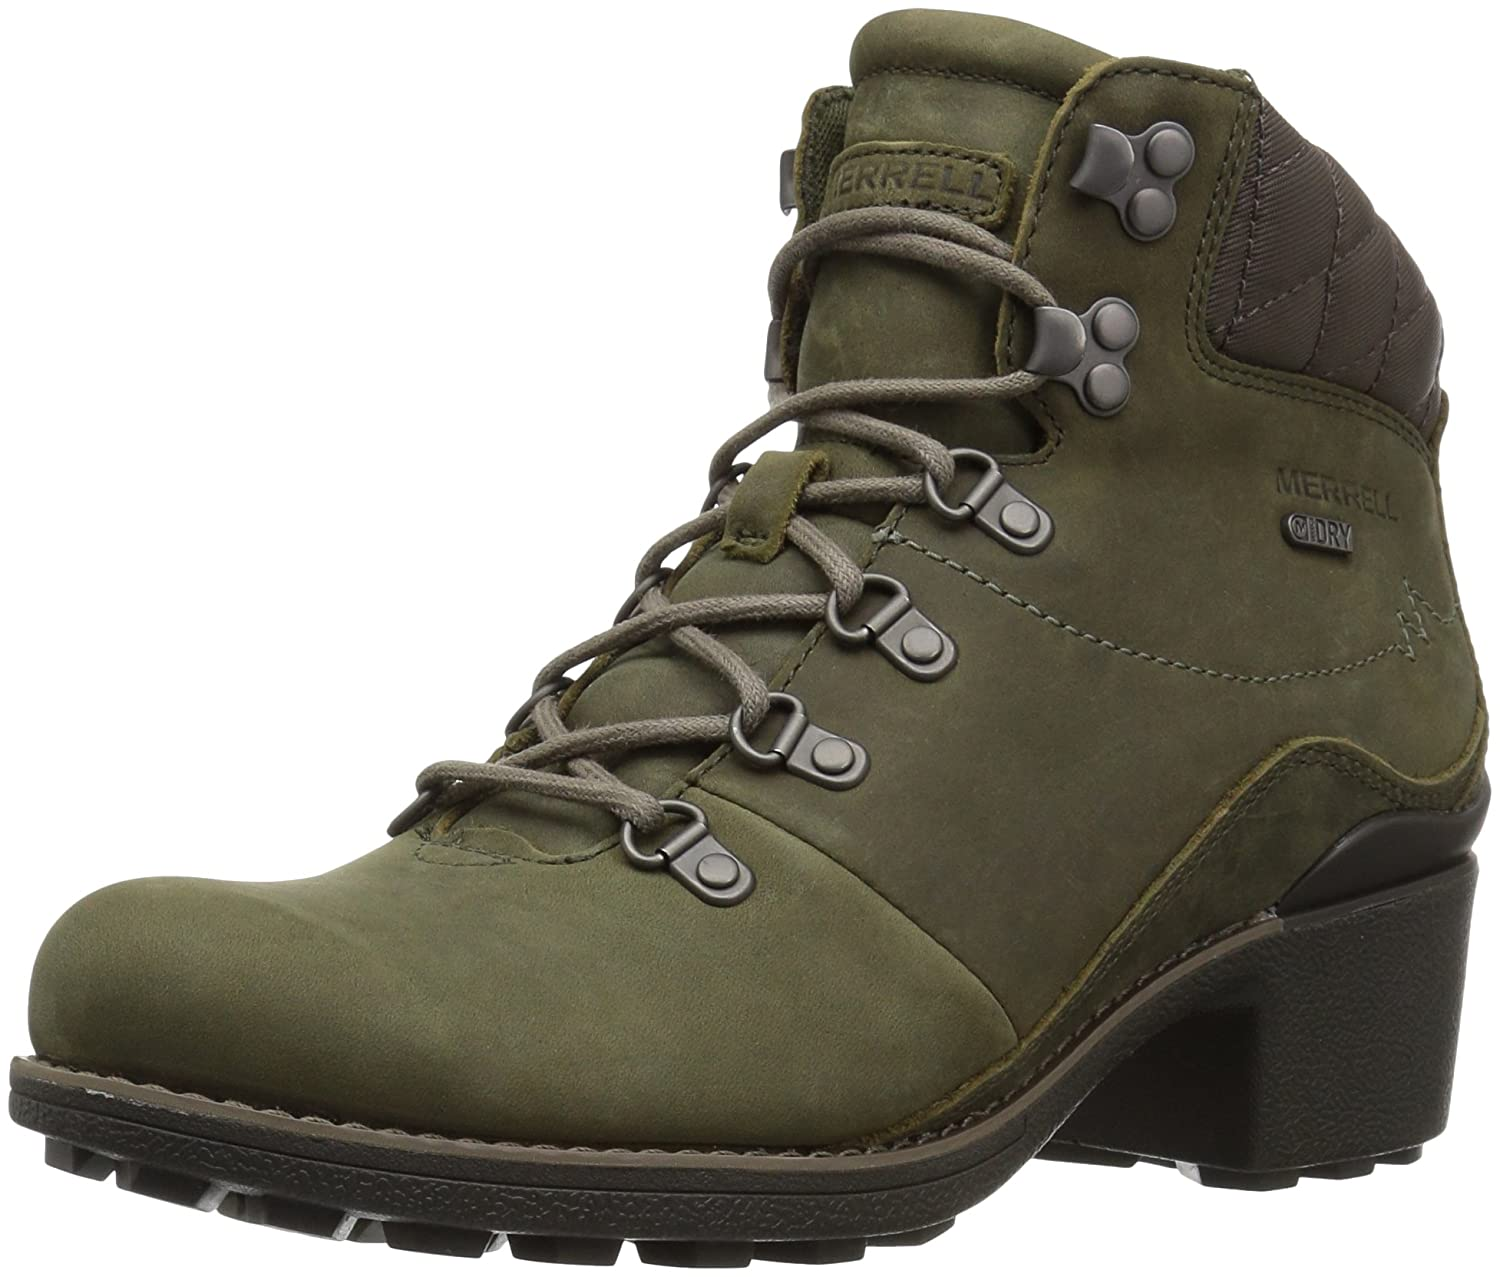 Merrell Women's Chateau Mid Lace Waterproof Snow Boot B01NGYEARU 10 B(M) US|Dusty Olive